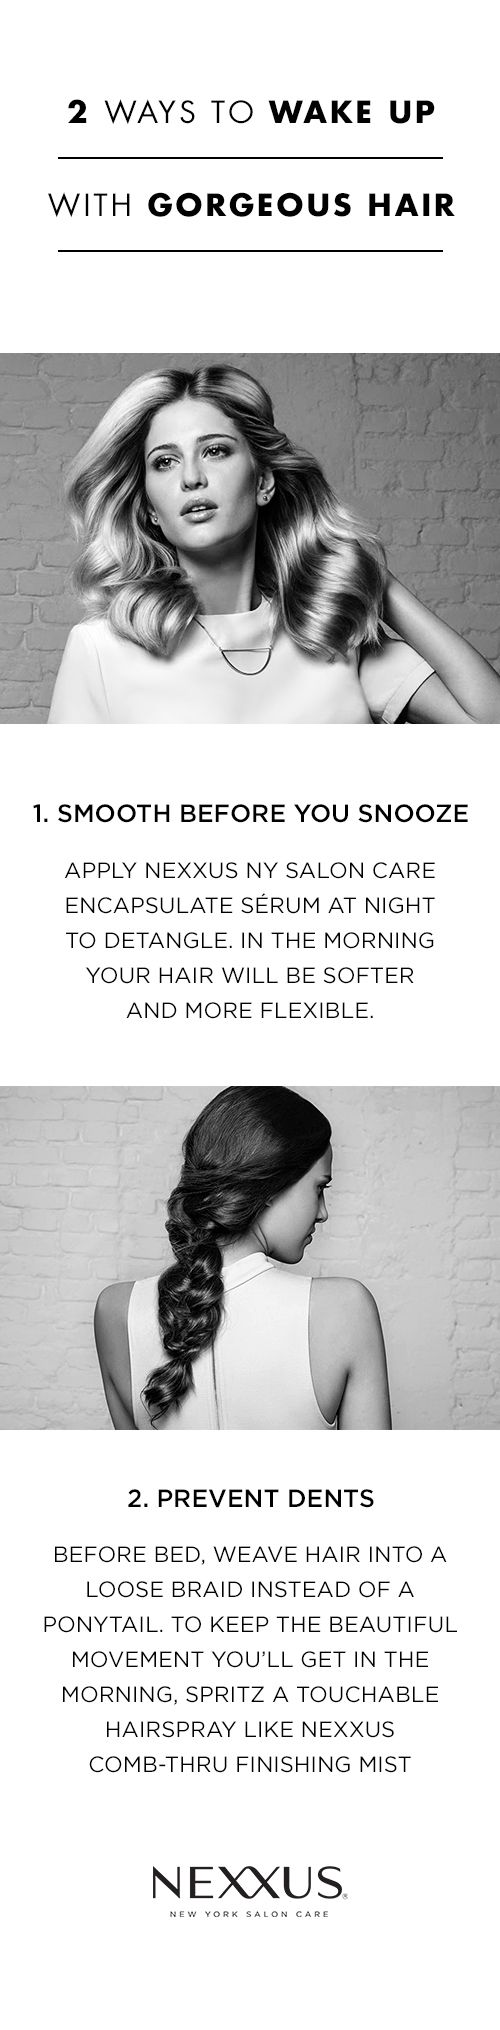 A.M. hair can be unpredictable—you never know what you'll see when you turn on the bathroom light. On a hectic morning, the last thing you want to worry about is your hair. We asked expert stylists how to wake up with strands that are work-ready (and troubleshoot if they're not).